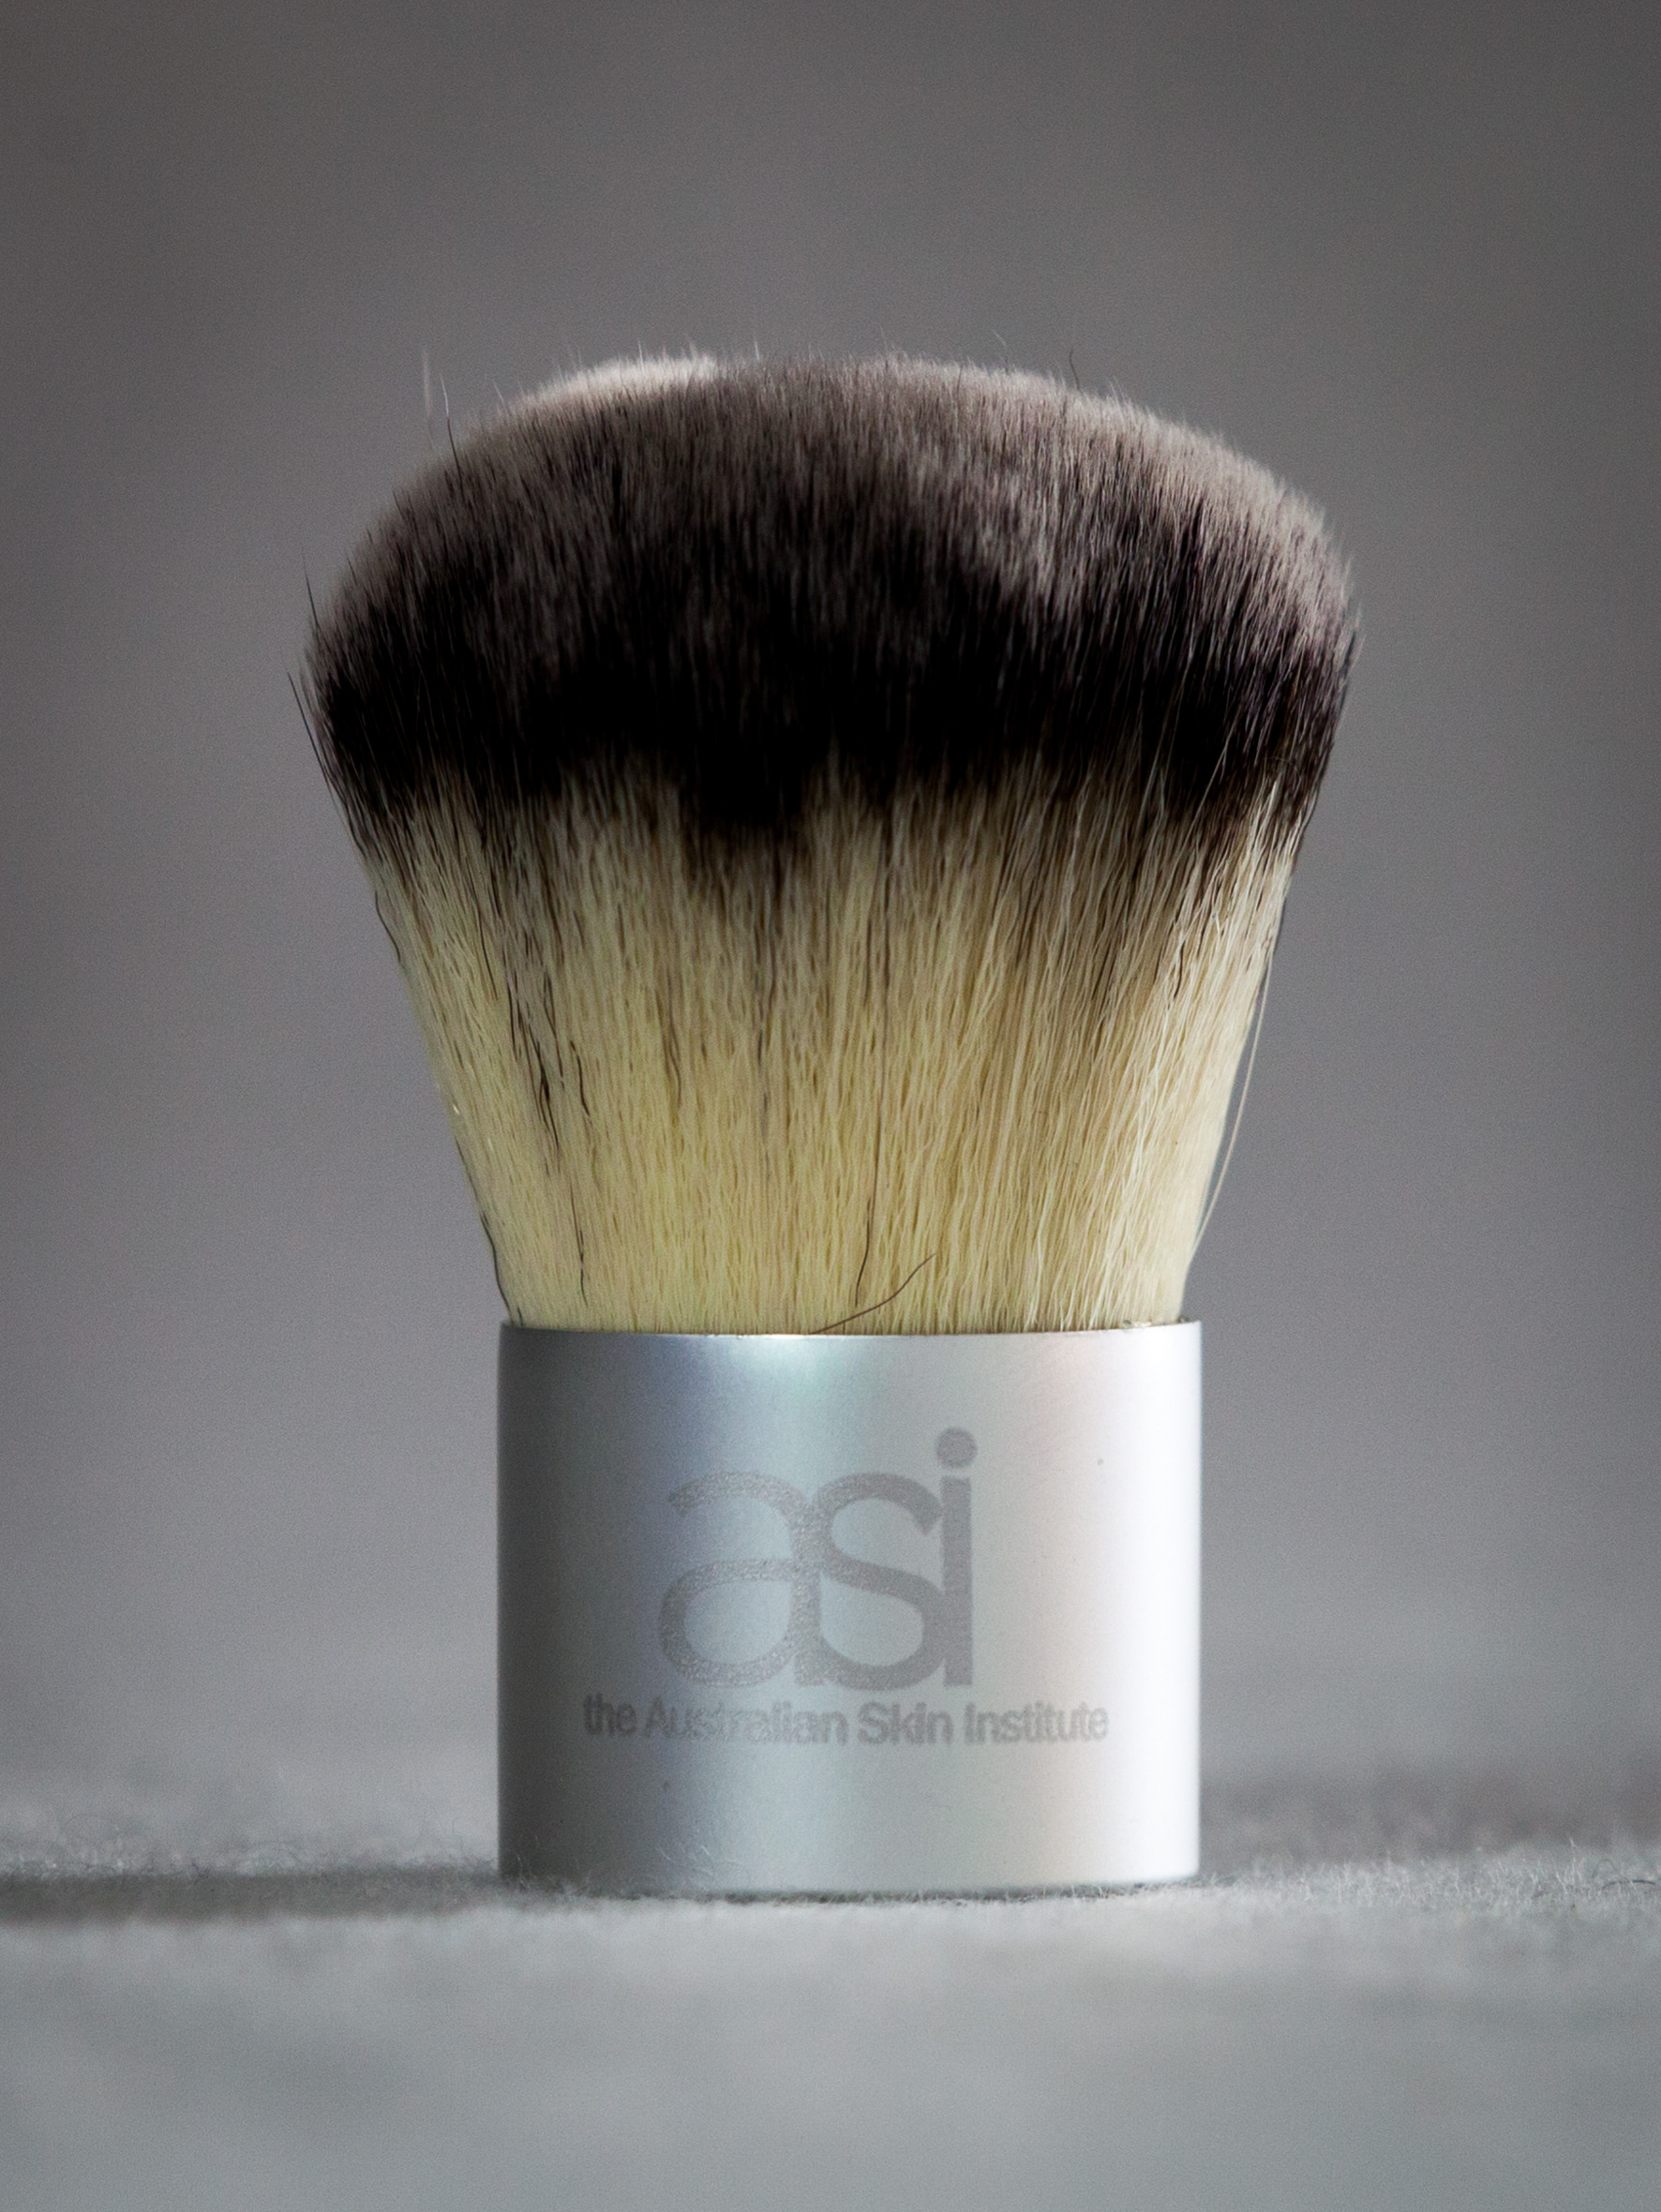 ASI Natural Kabuki Makeup Brush